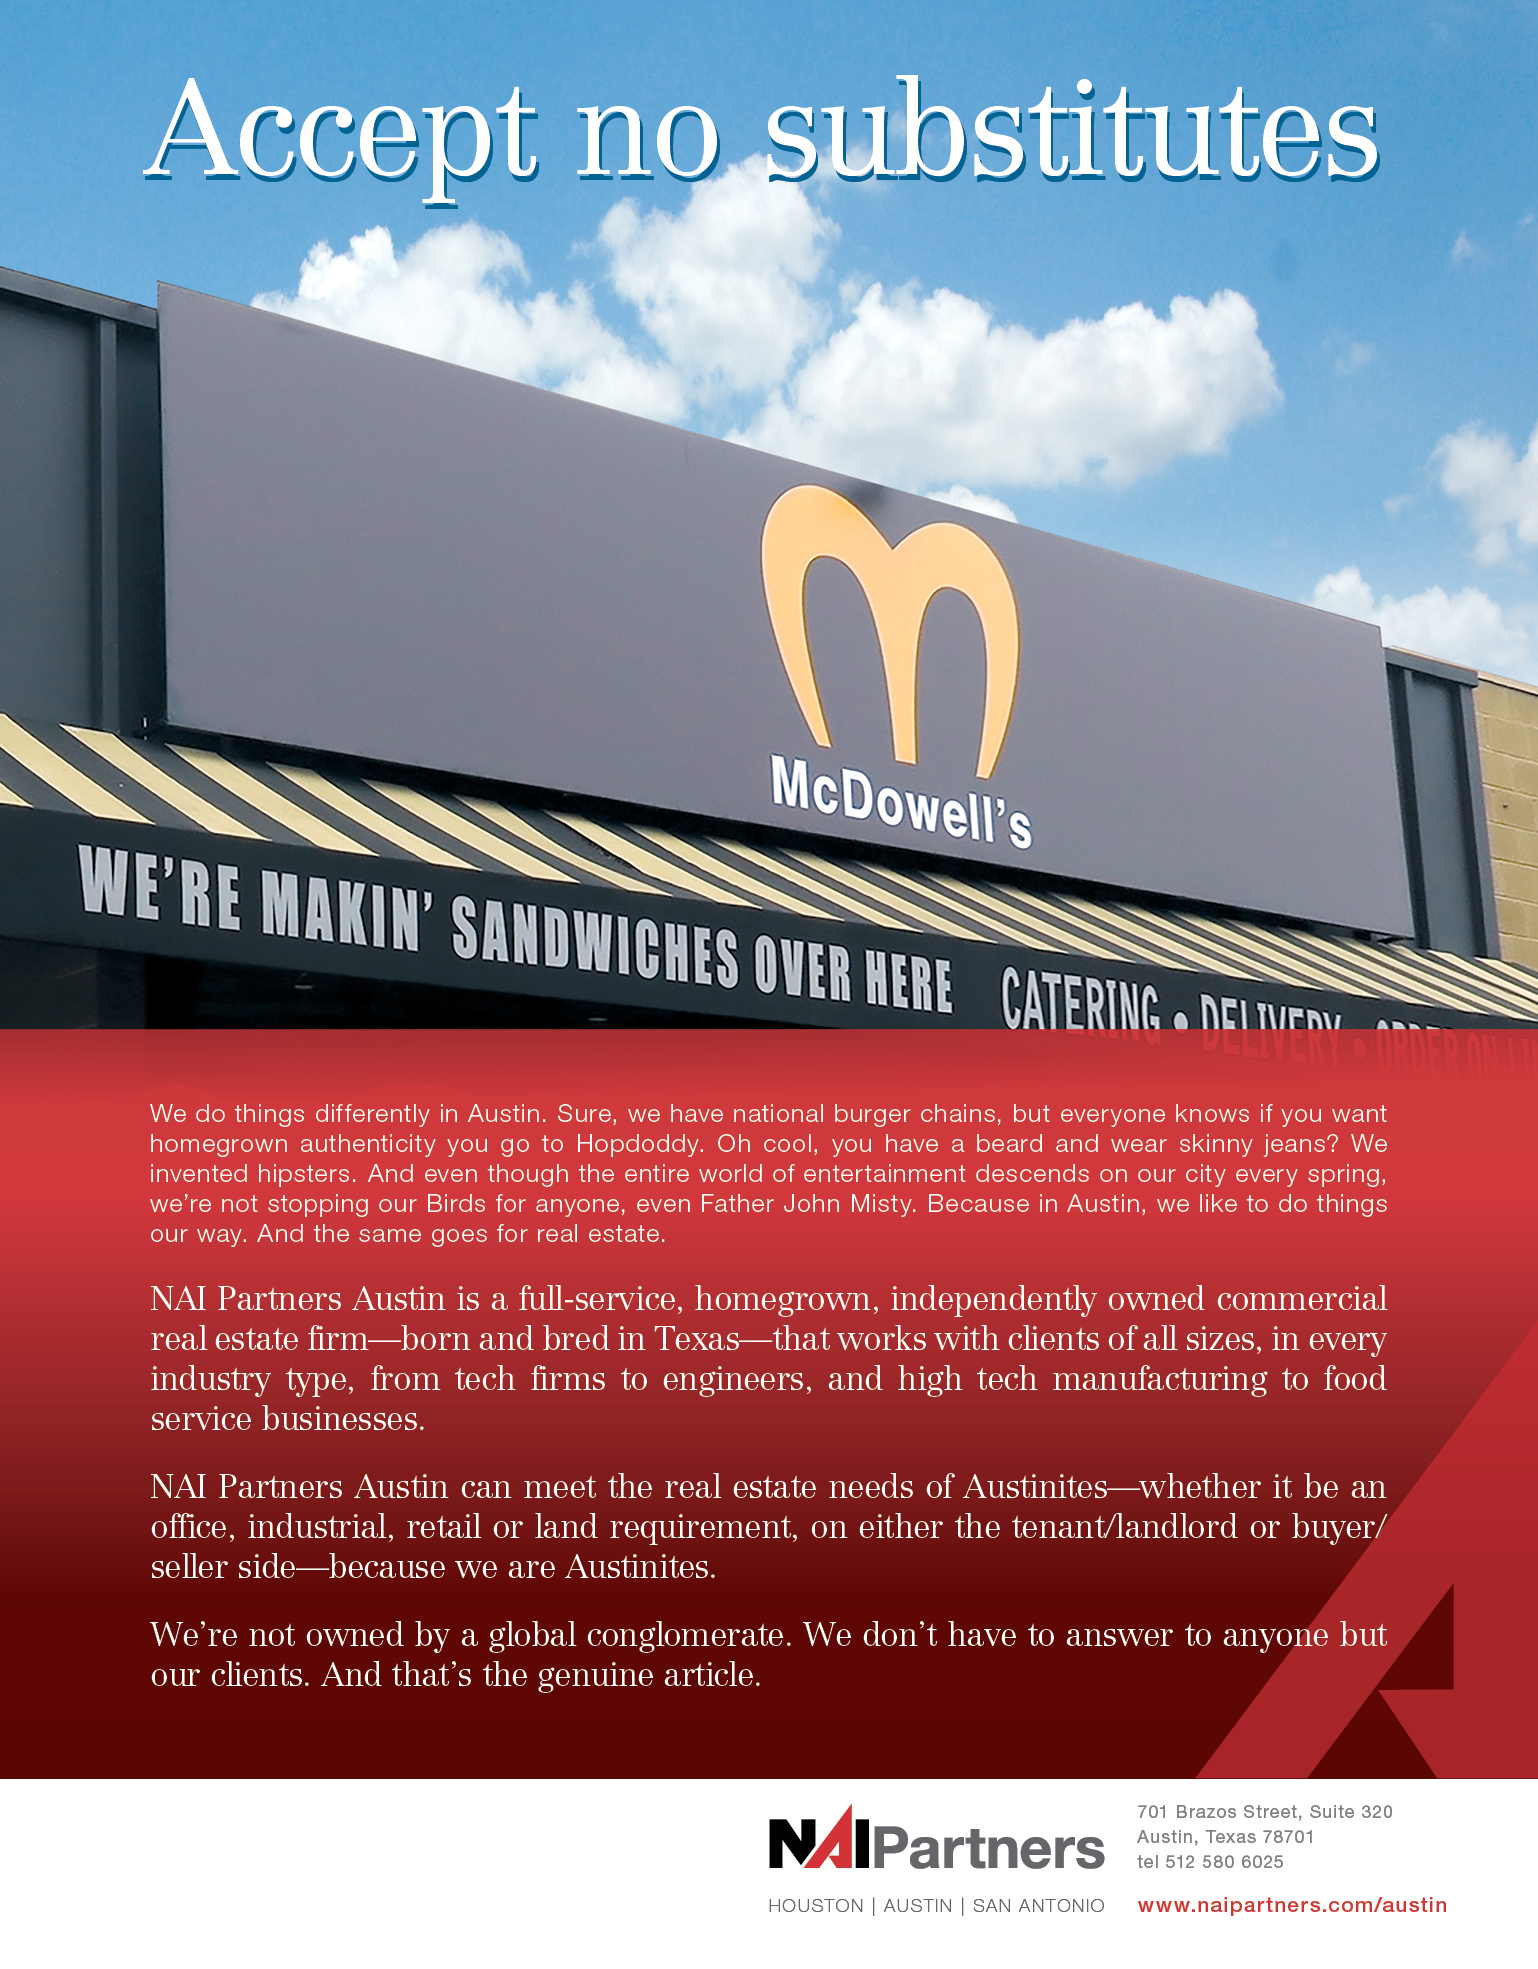 NAI Partners Austin Business Journal Ad - Accept no substitutions- McDowell's